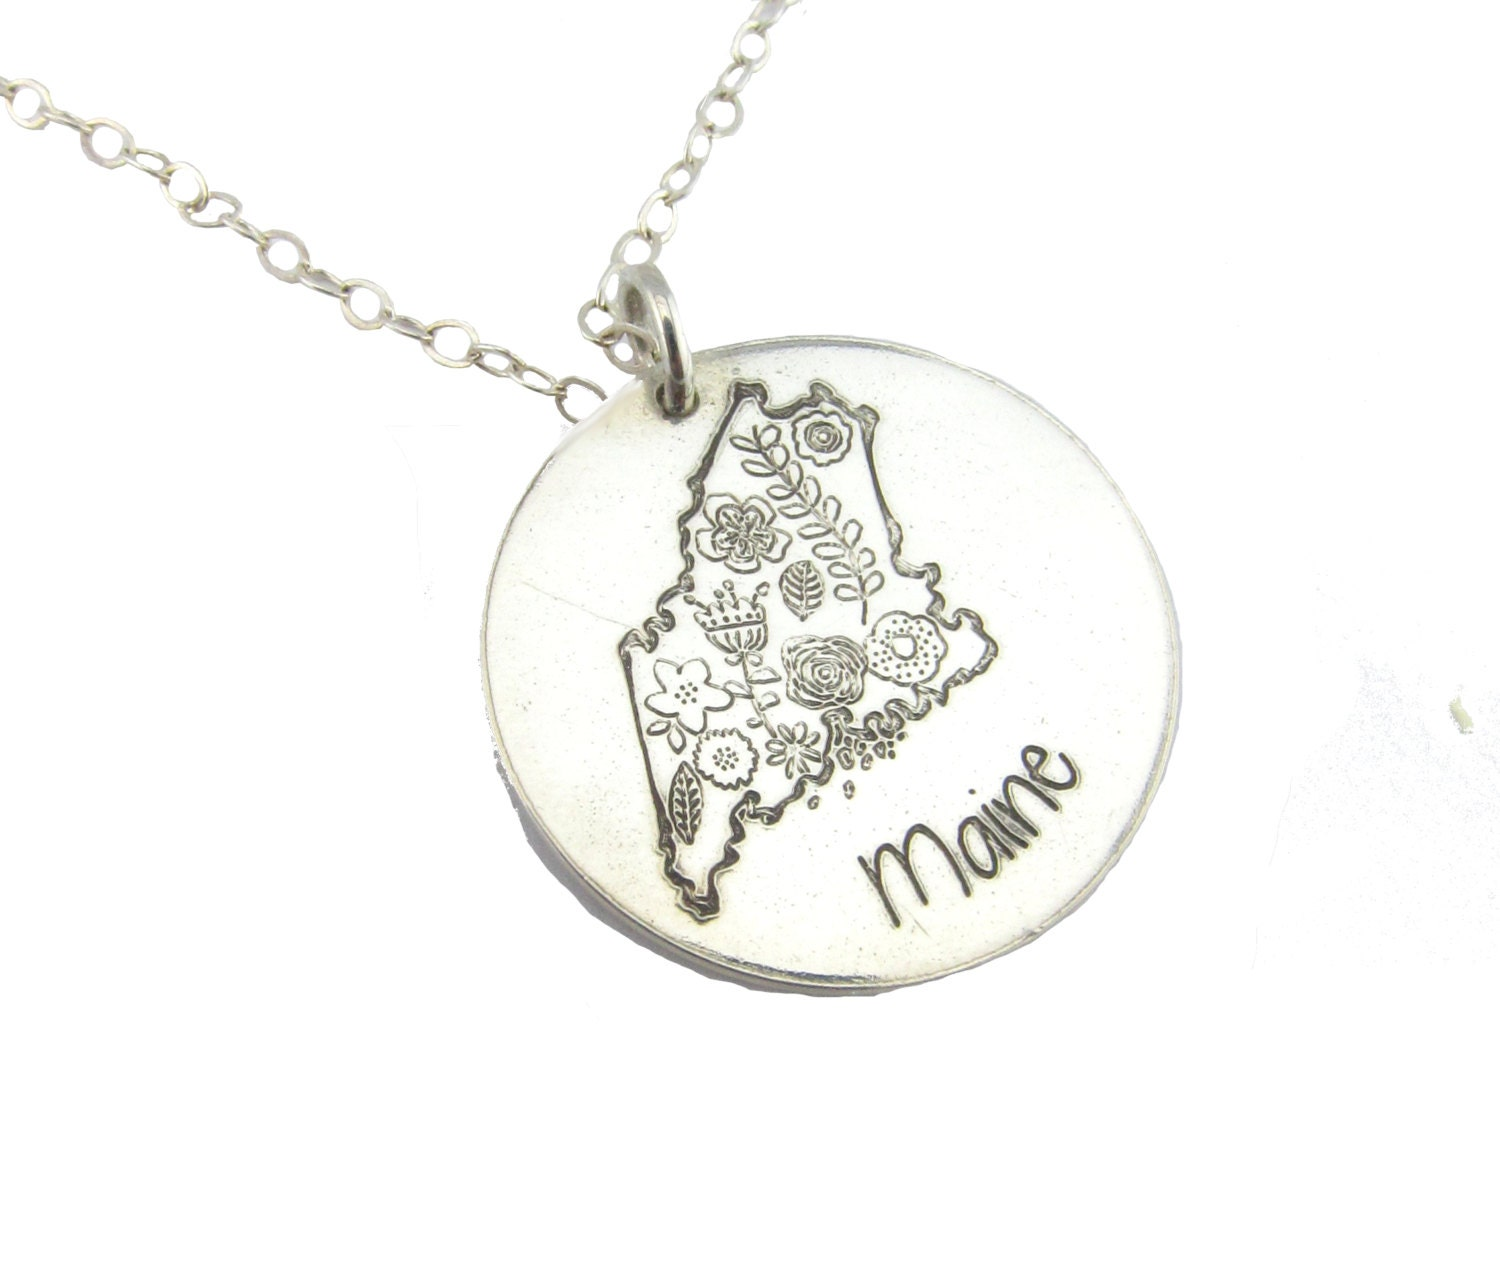 state necklace silver necklace personalized jewelry